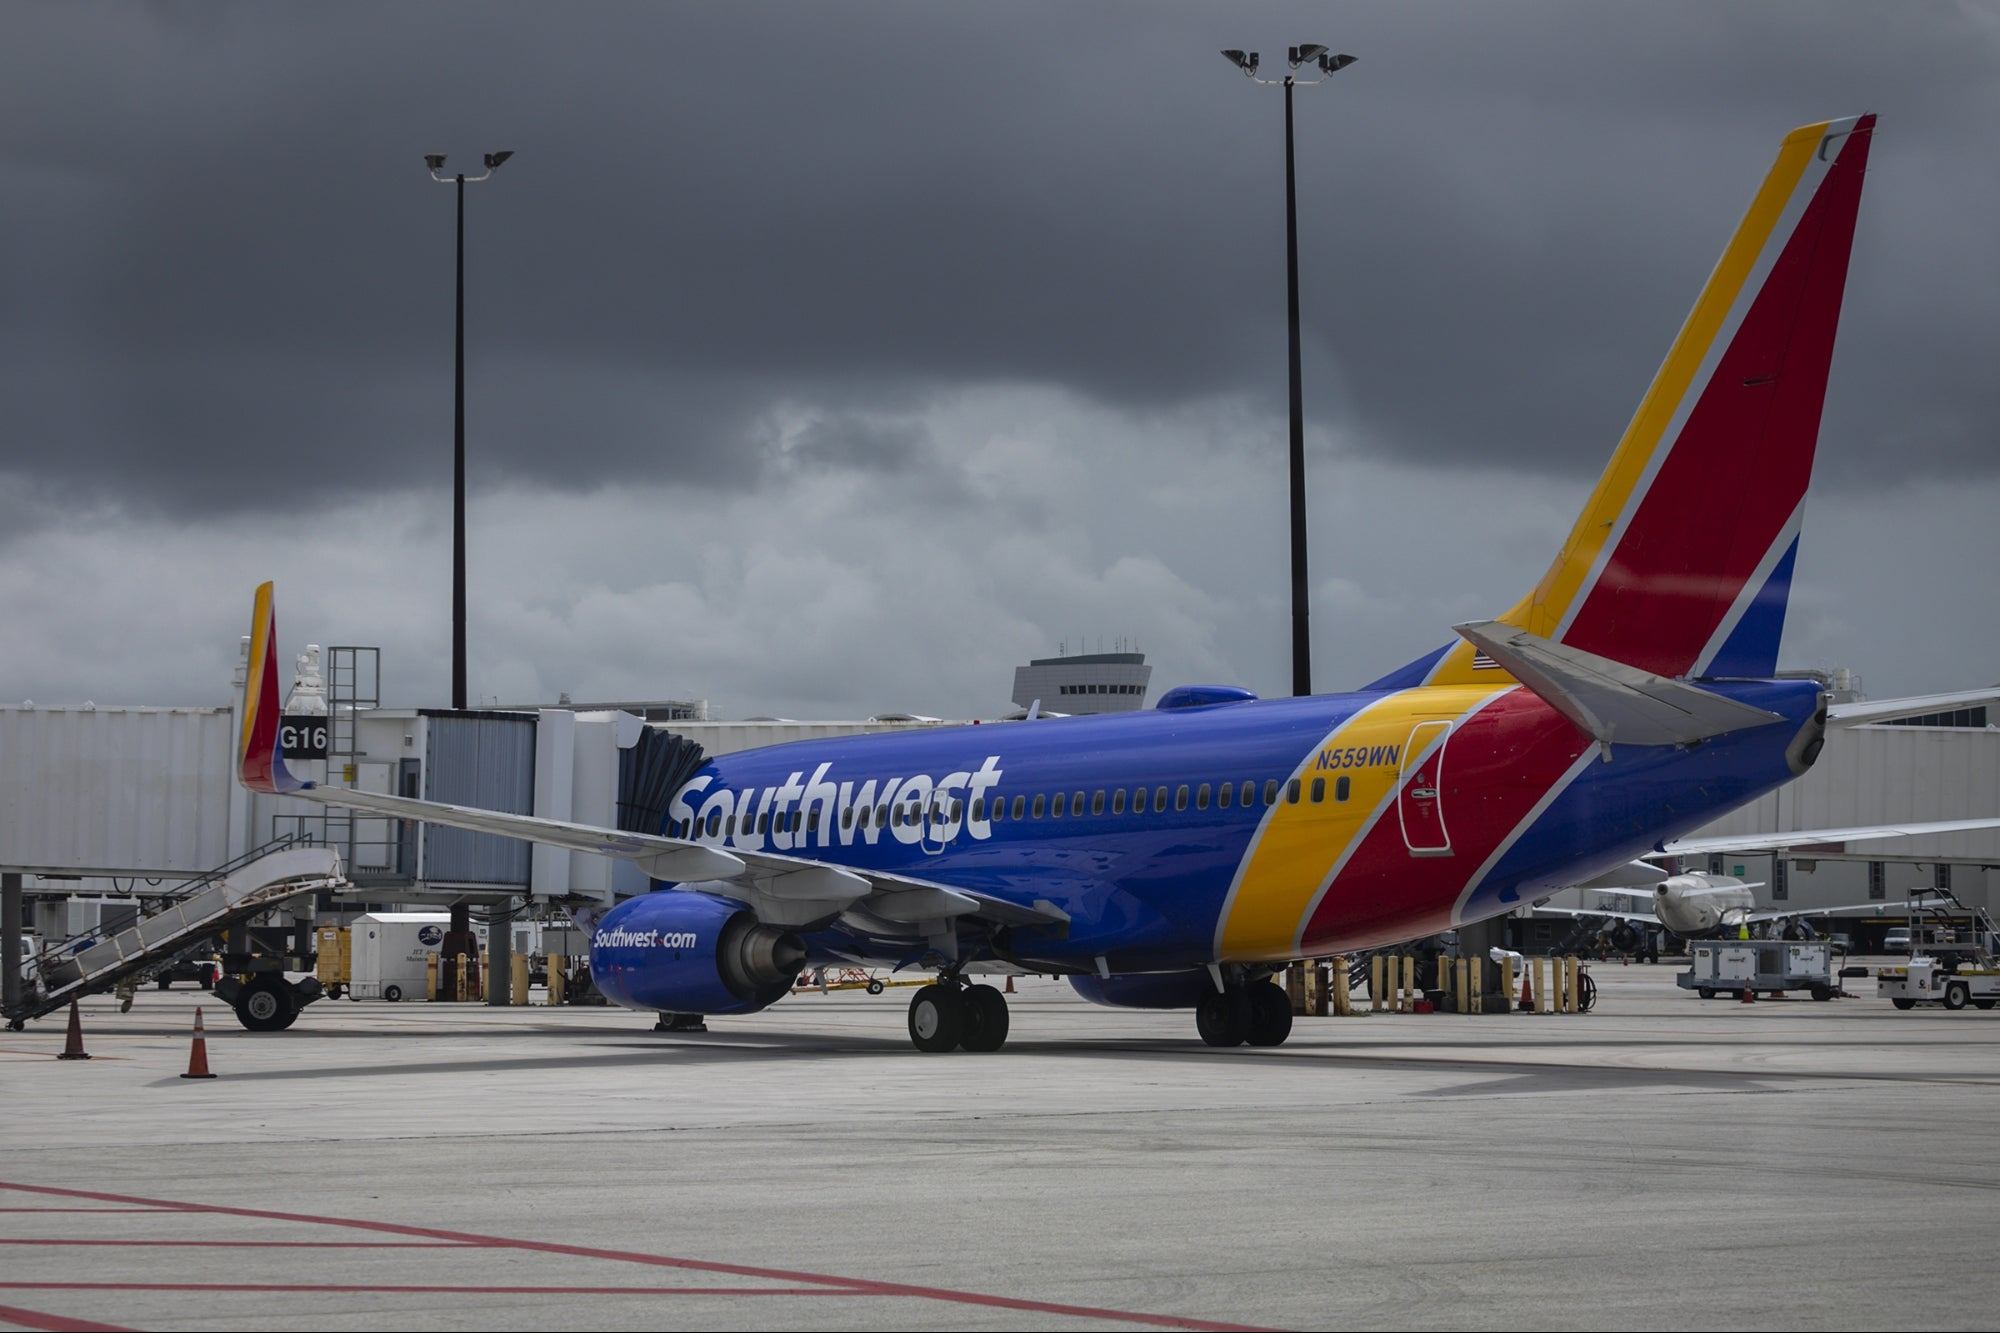 Disgruntled Customers Sound Off on Southwest Airlines Amid Cancellations, Claim No Refunds or Answers: 'This Is Entirely Self-Inflicted'